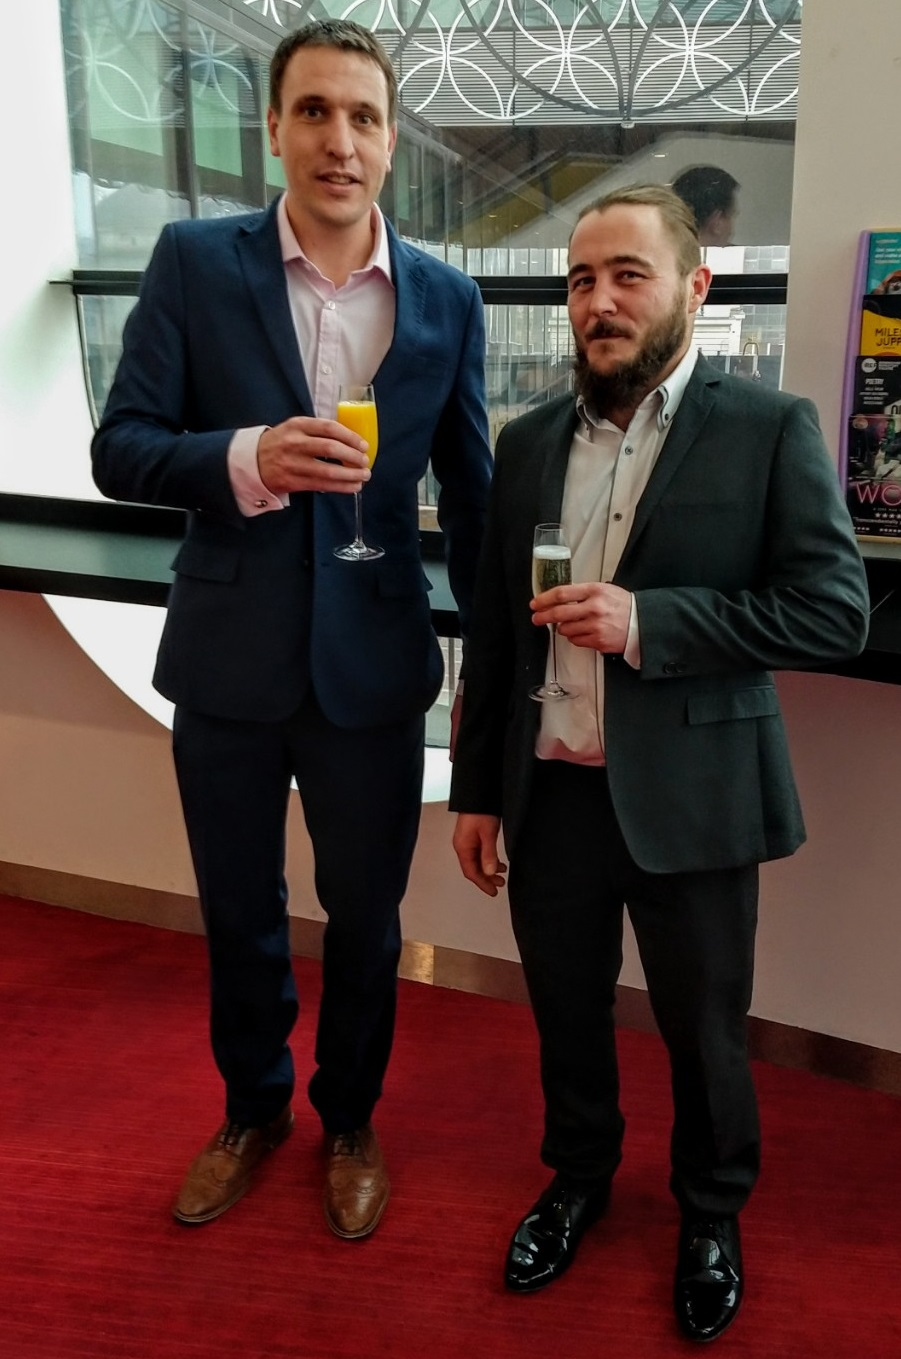 Damian Nunn of Trant Engineering, right, with James Henderson, Director of Process and Water at the multi-disciplinary contractor. They are pictured at the Library of Birmingham, where Damian was named Outstanding Apprentice of the year in the annual National Construction College awards.